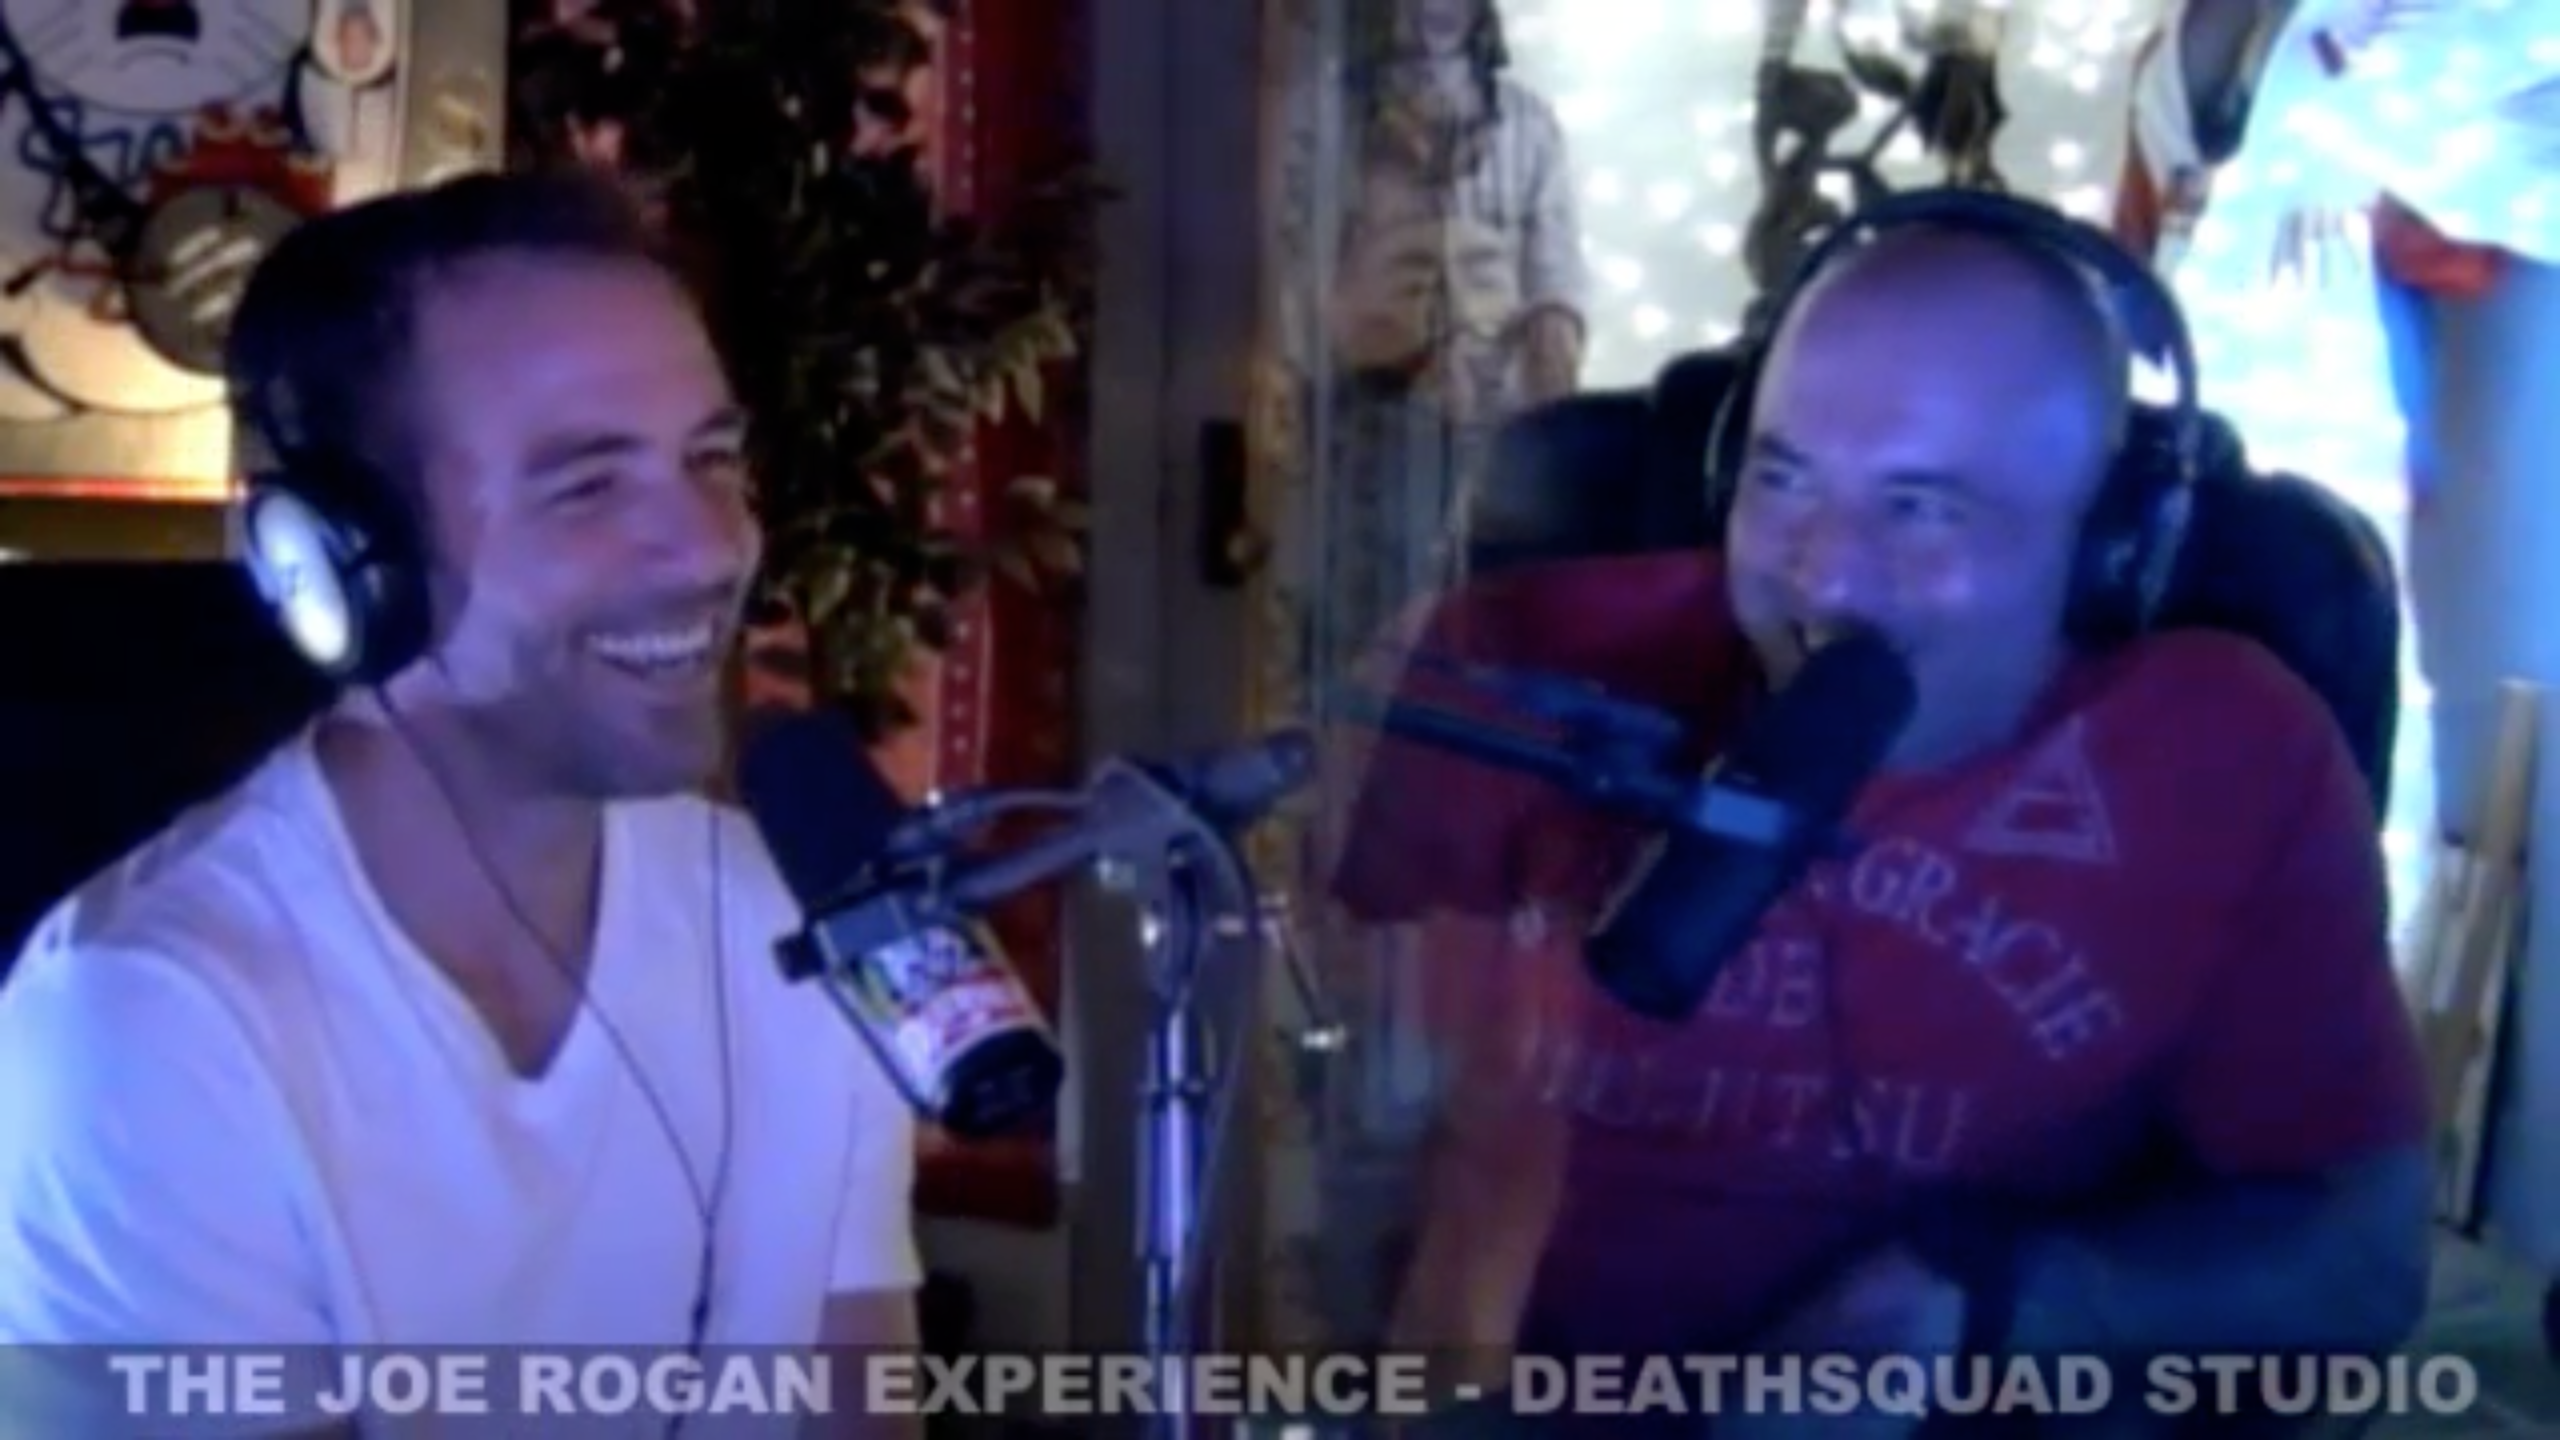 The Joe Rogan Experience #281 - Bryan Callen, Brian Redban